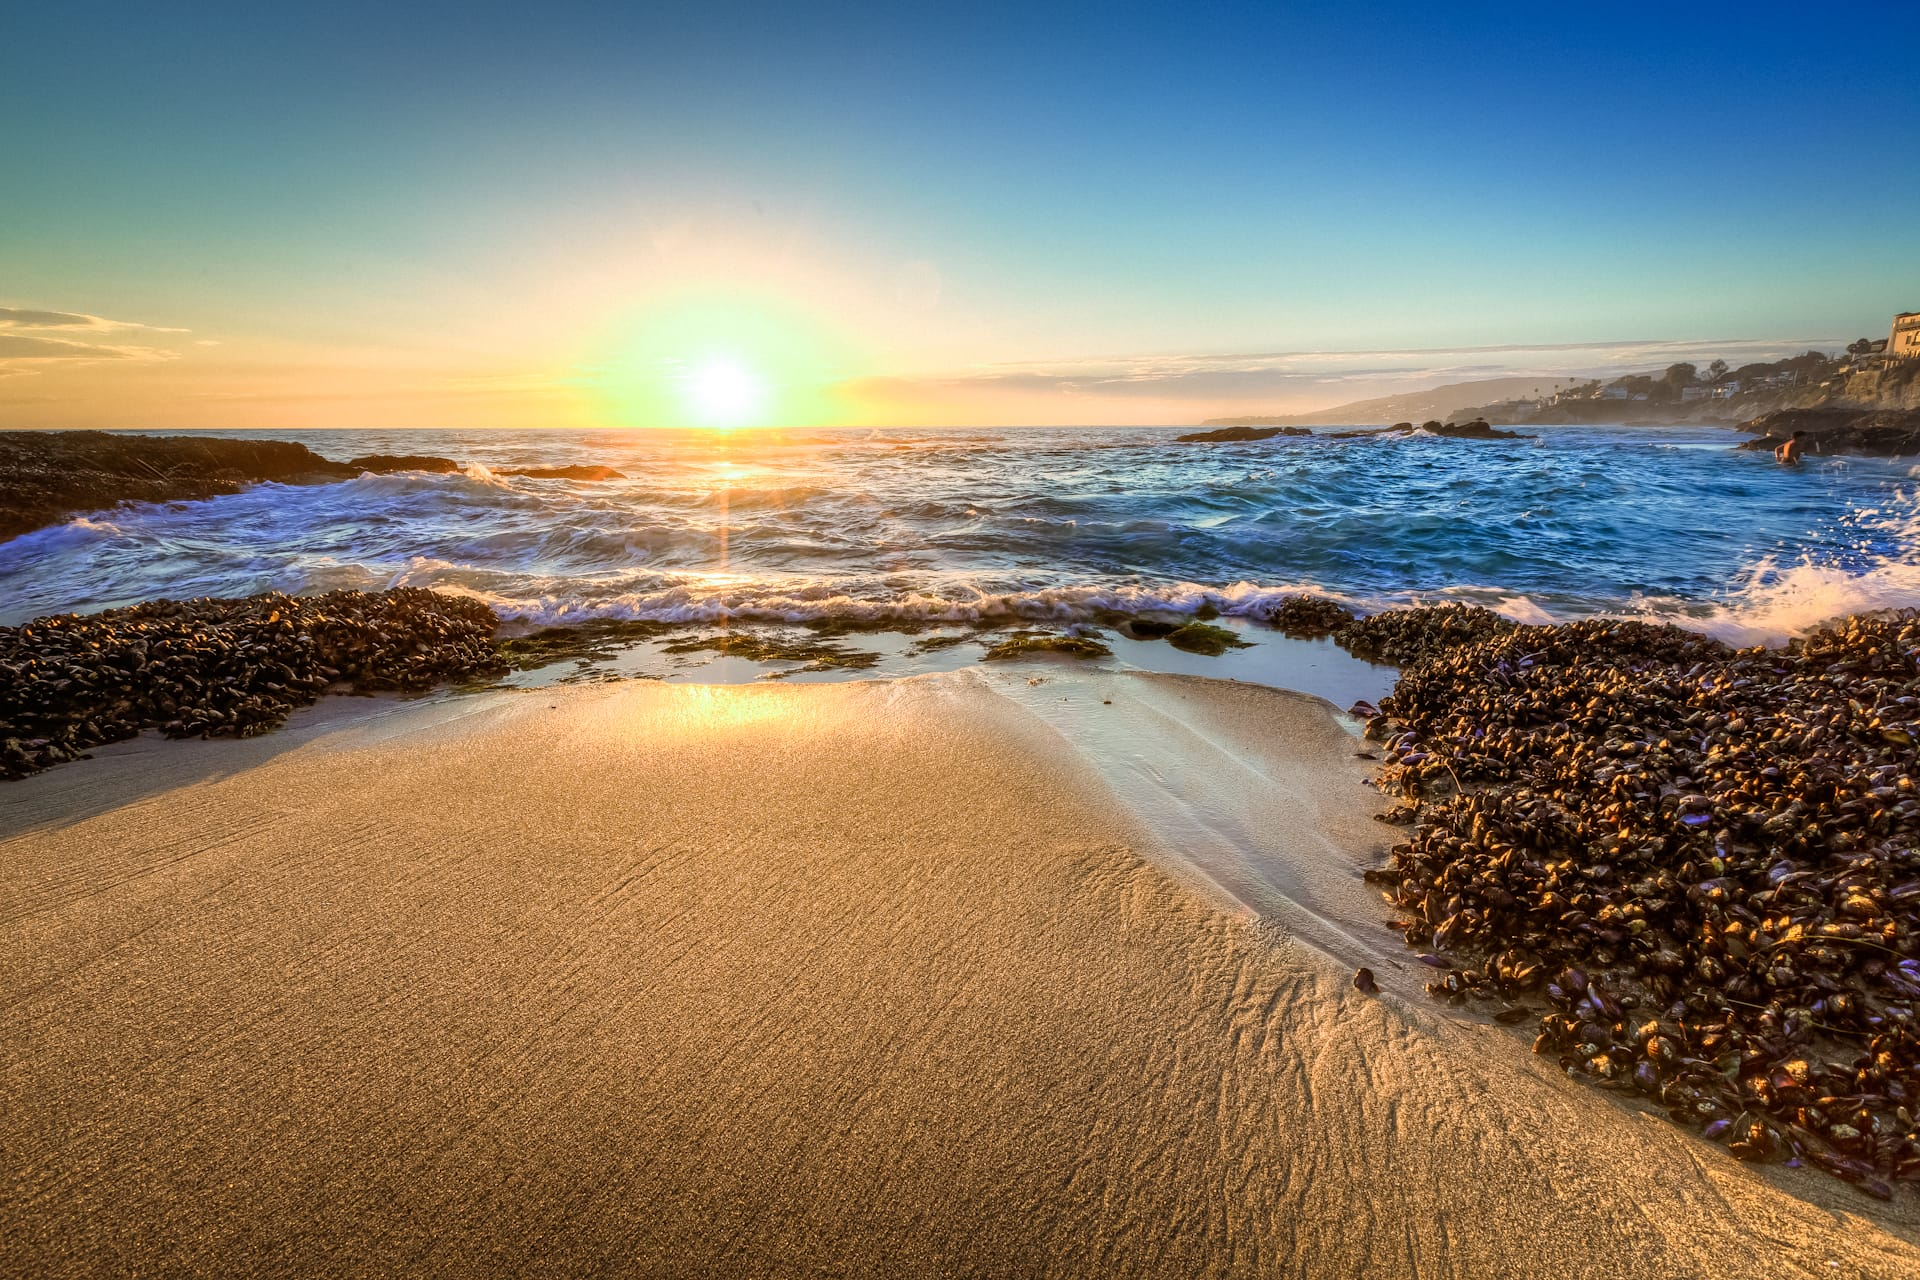 HDR Photo of Victoria Beach in Laguna Beach